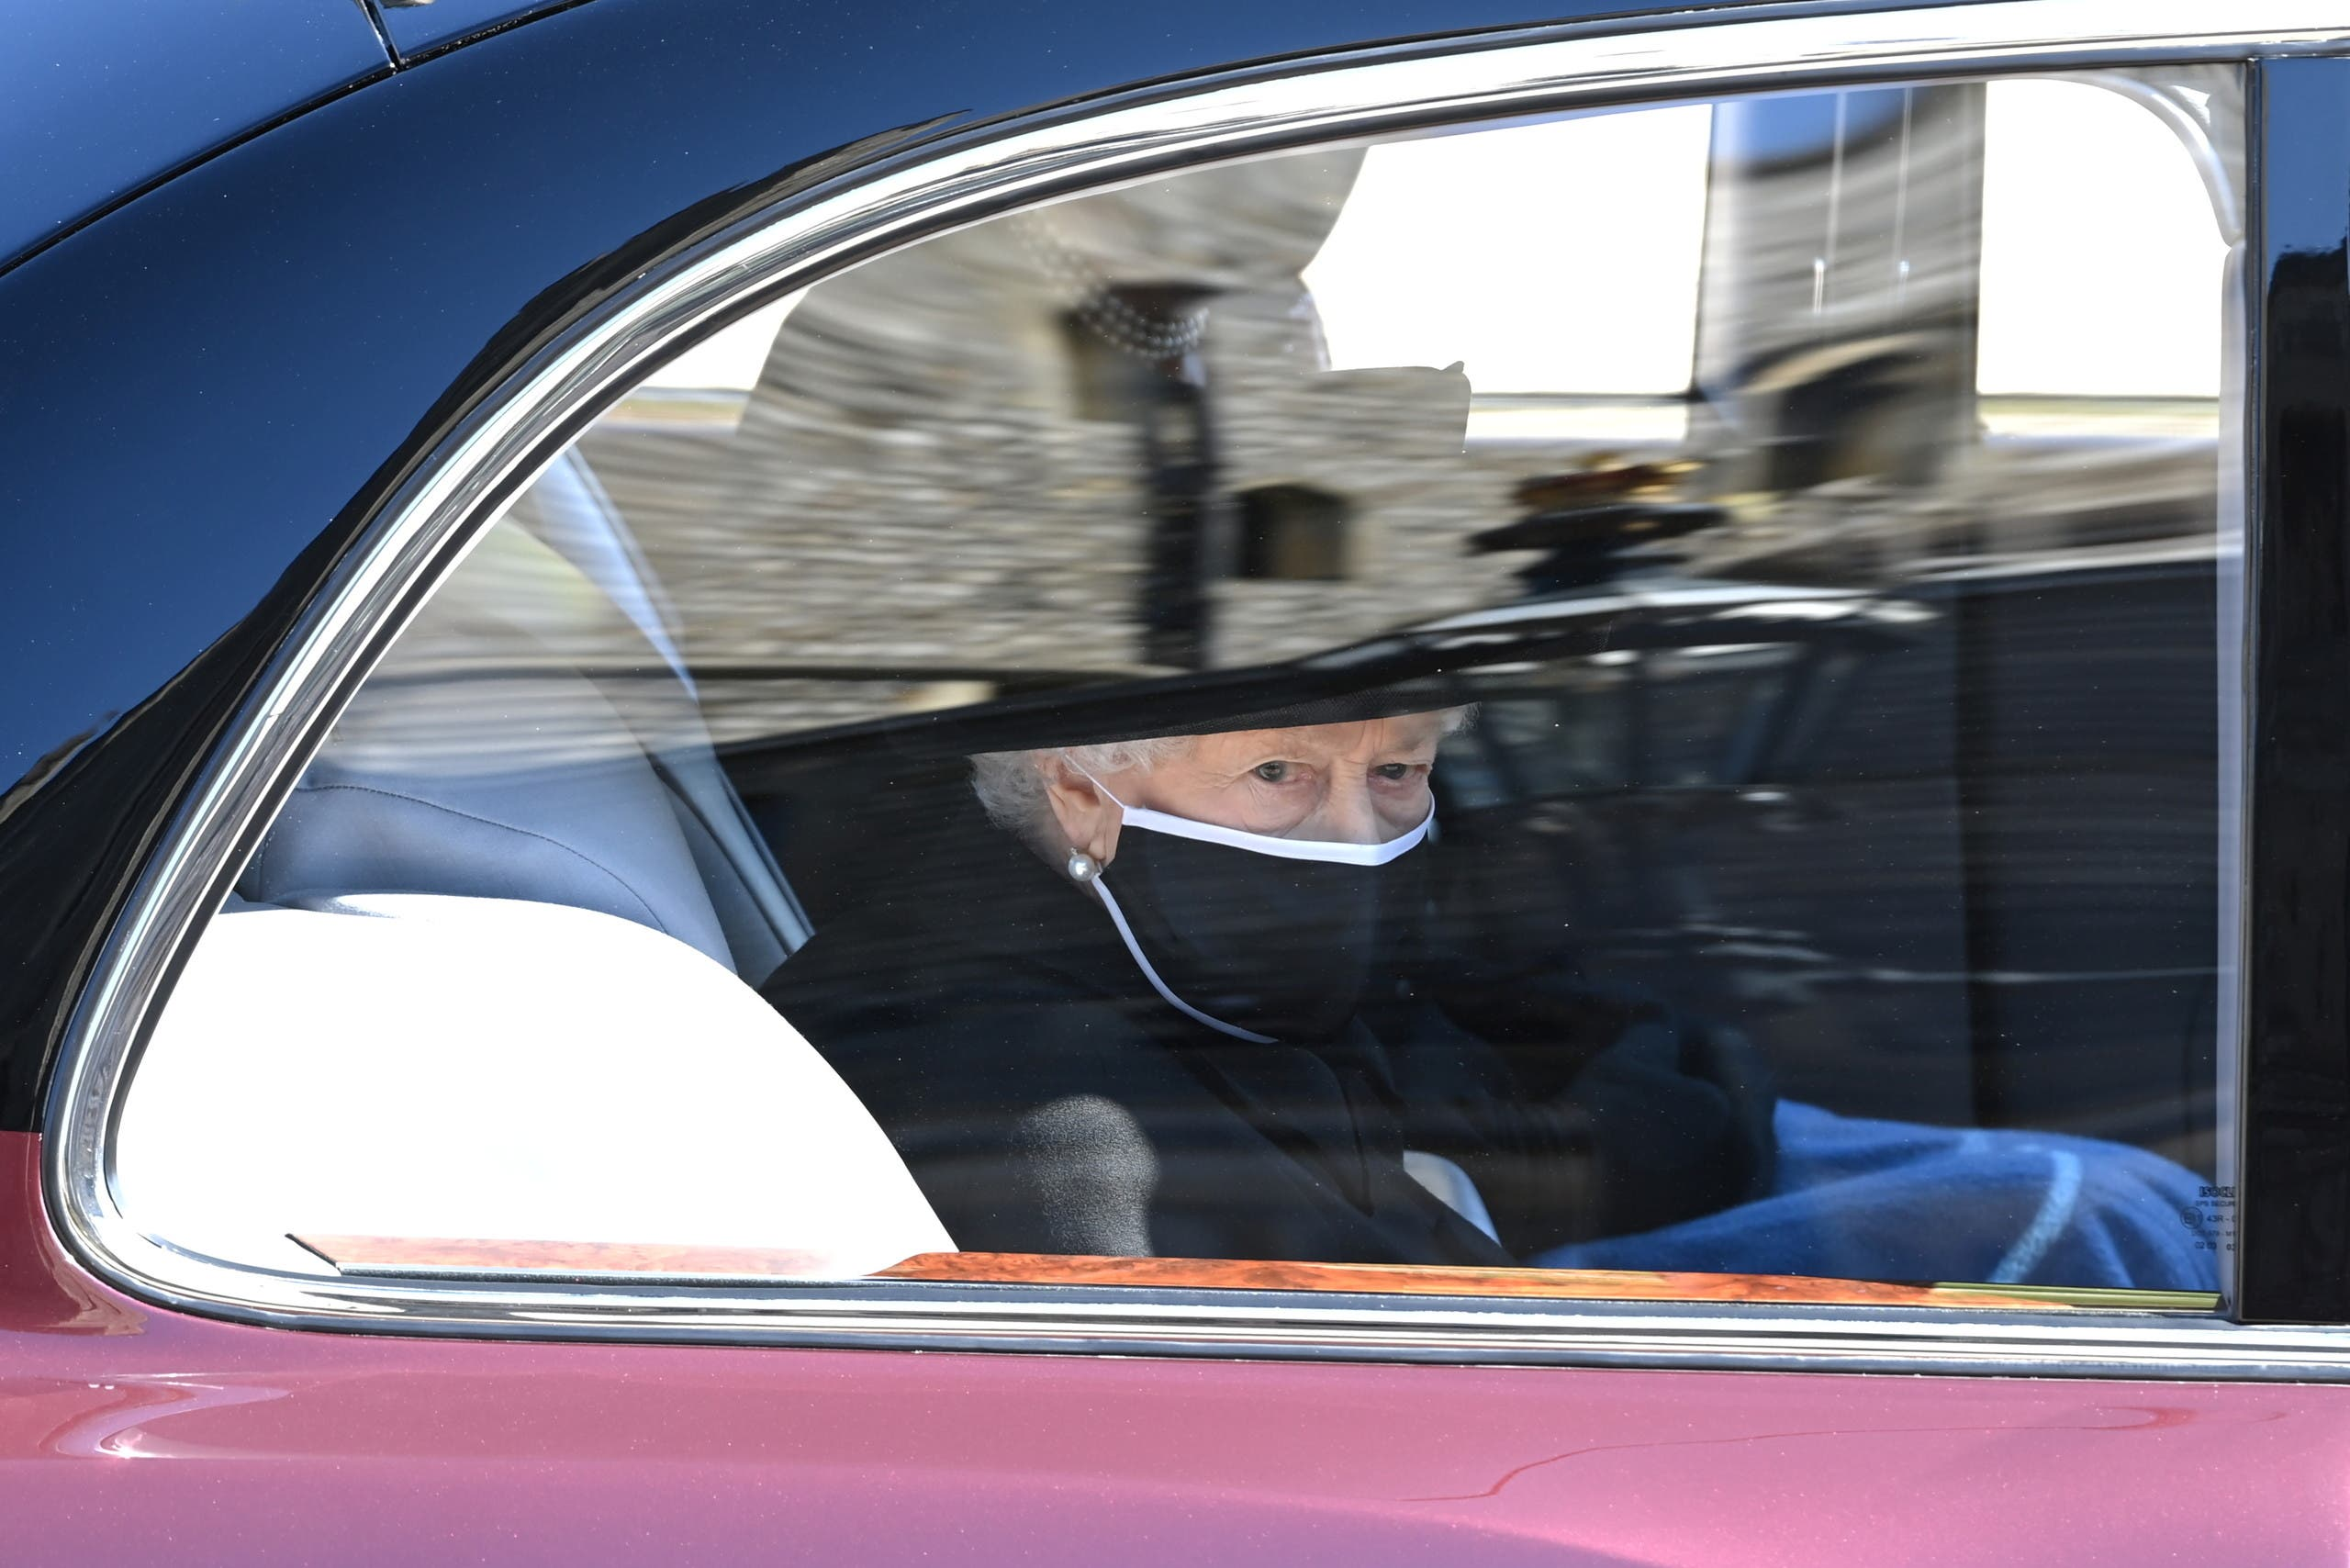 Britain's Queen Elizabeth attends the funeral of her husband, Britain's Prince Philip, who died at the age of 99, on the grounds of Windsor Castle in Windsor, Britain, April 17, 2021. (Reuters)